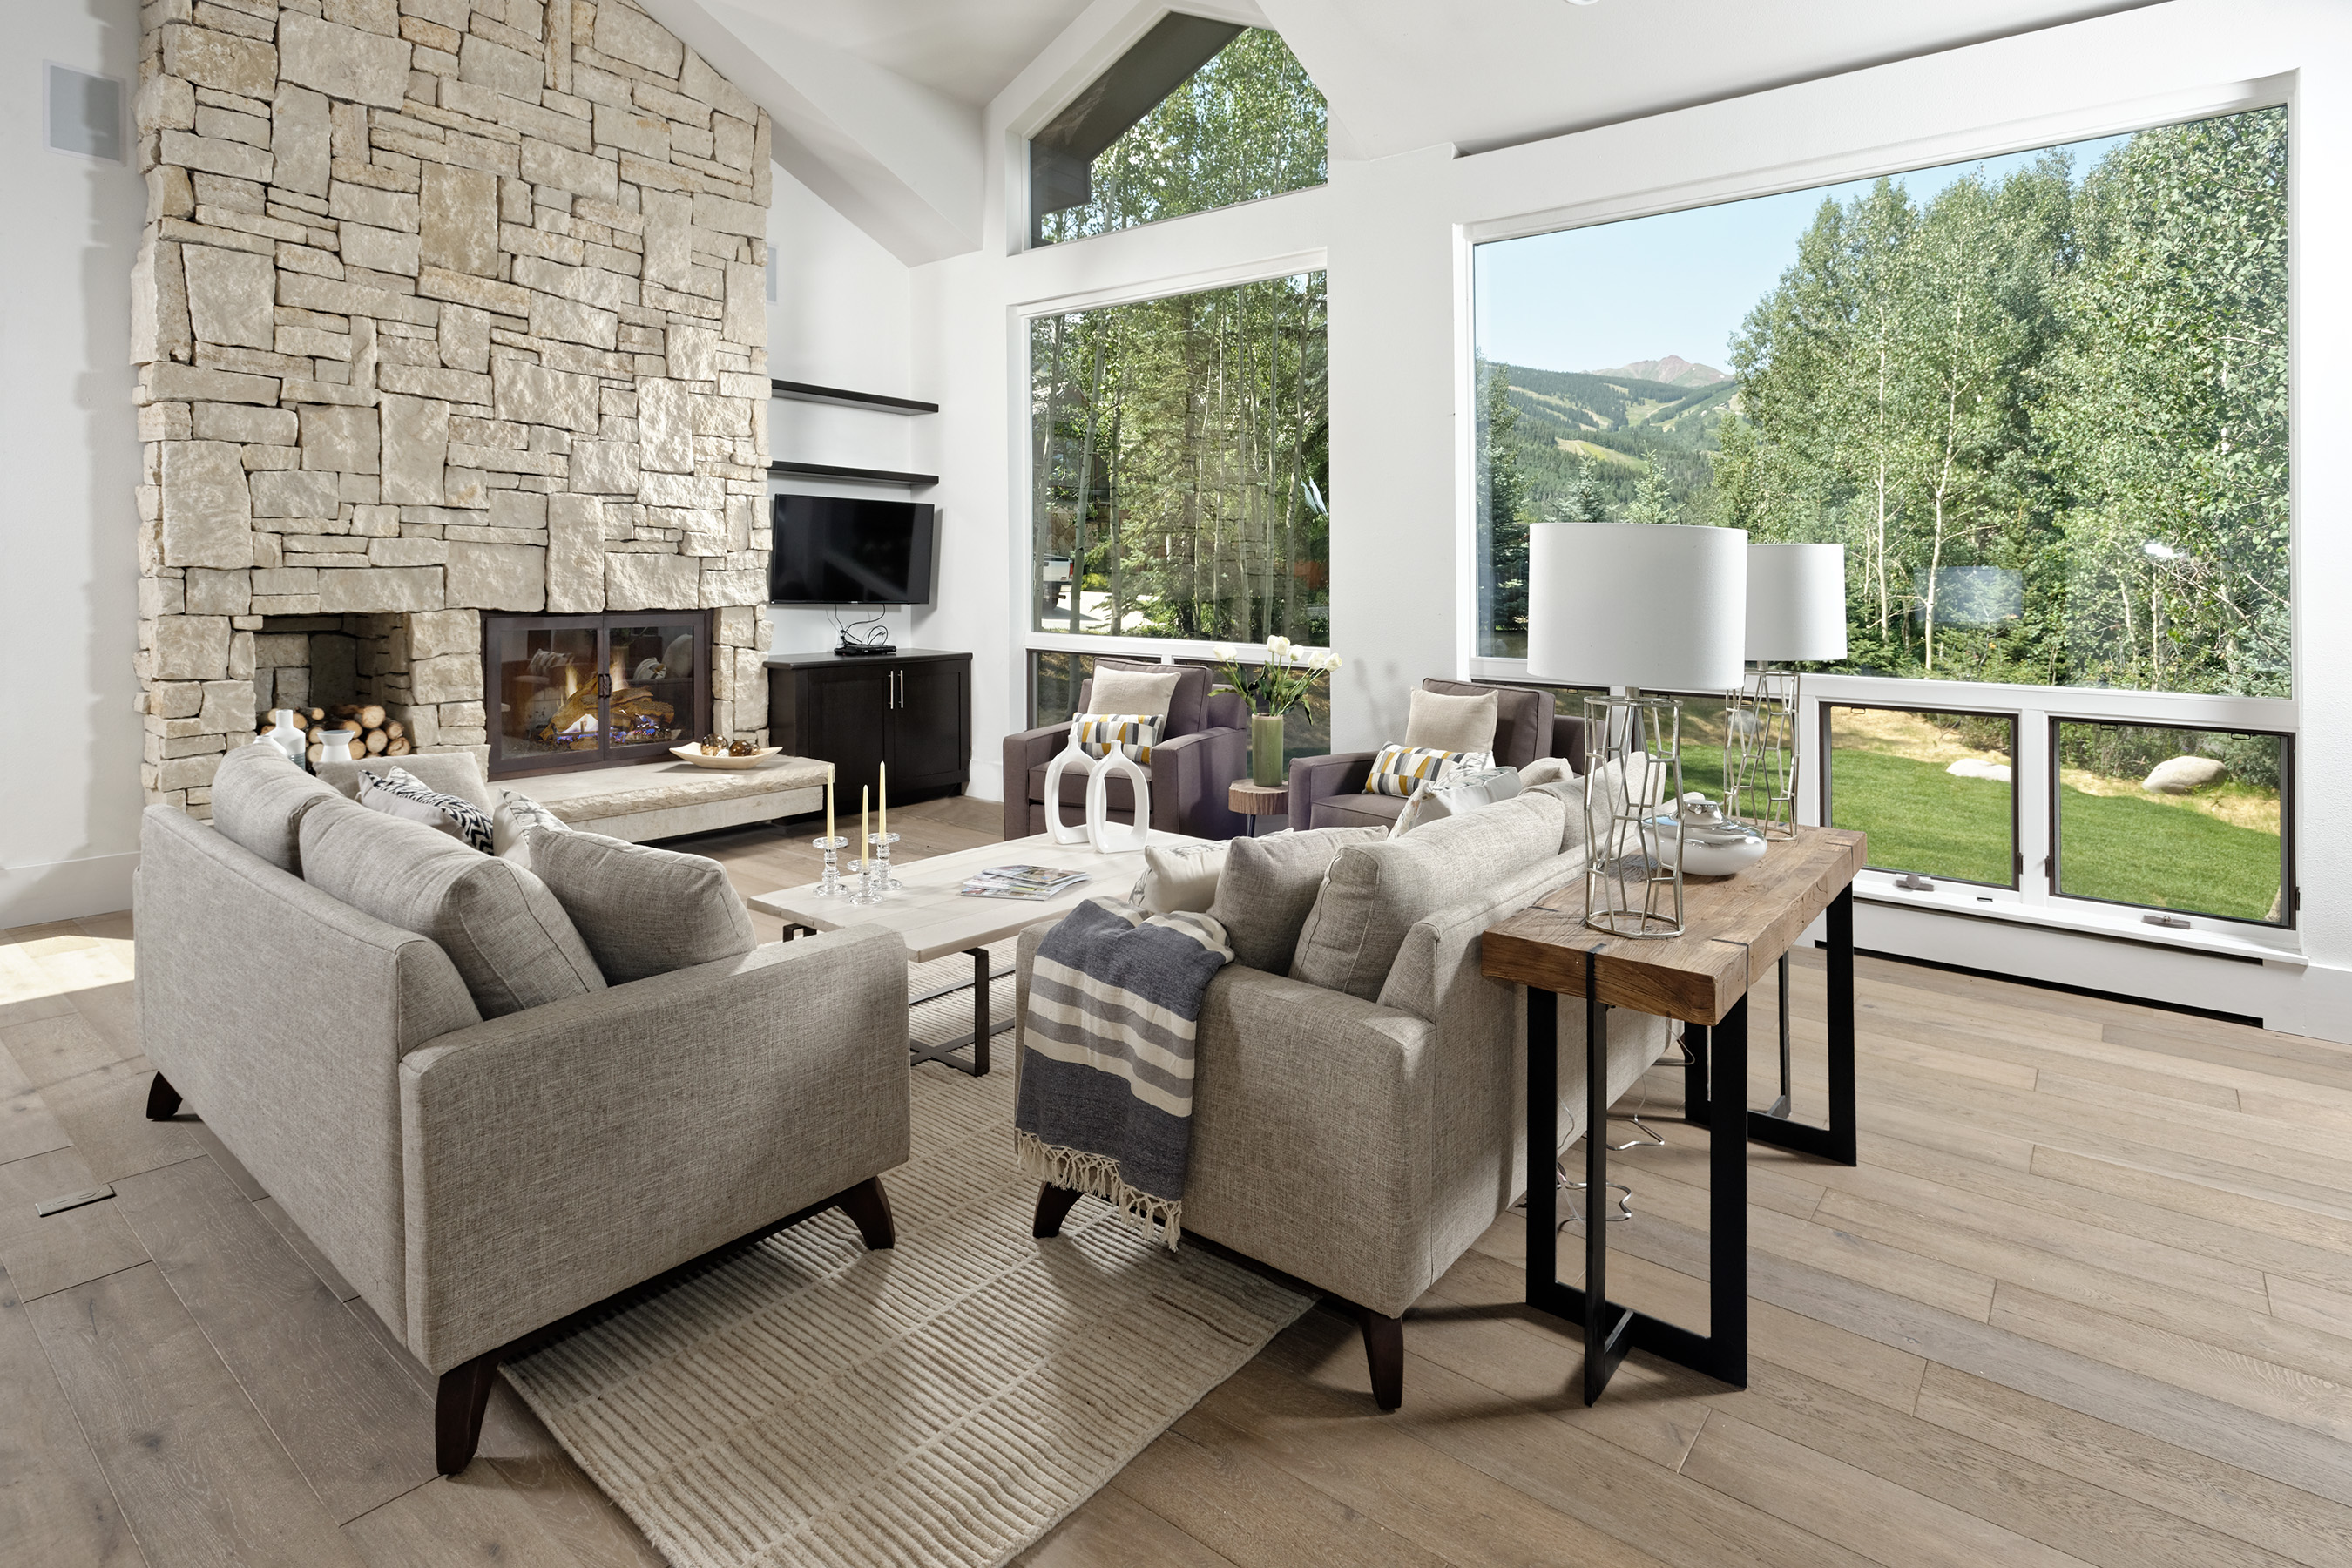 Casa Unifamiliar por un Venta en Ridge Run IV Lot 38 124 Baby Doe Lane Snowmass Village, Colorado, 81615 Estados Unidos